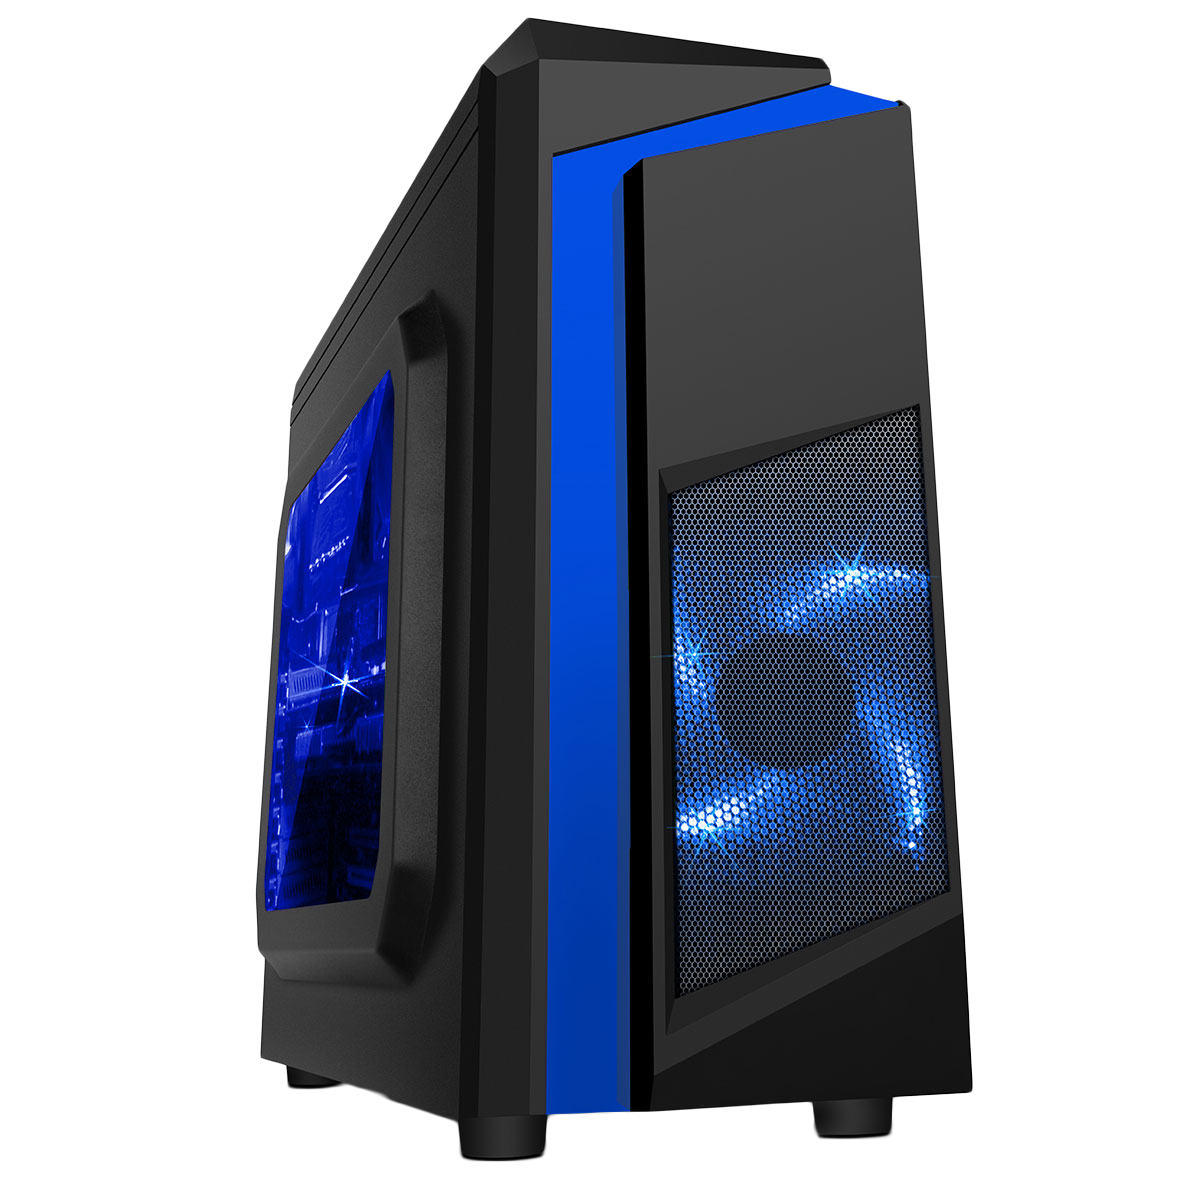 HST F3 Blue i5 Quad Core 8GB RAM 500GB GT710 NVIDIA Customisable Gaming PC